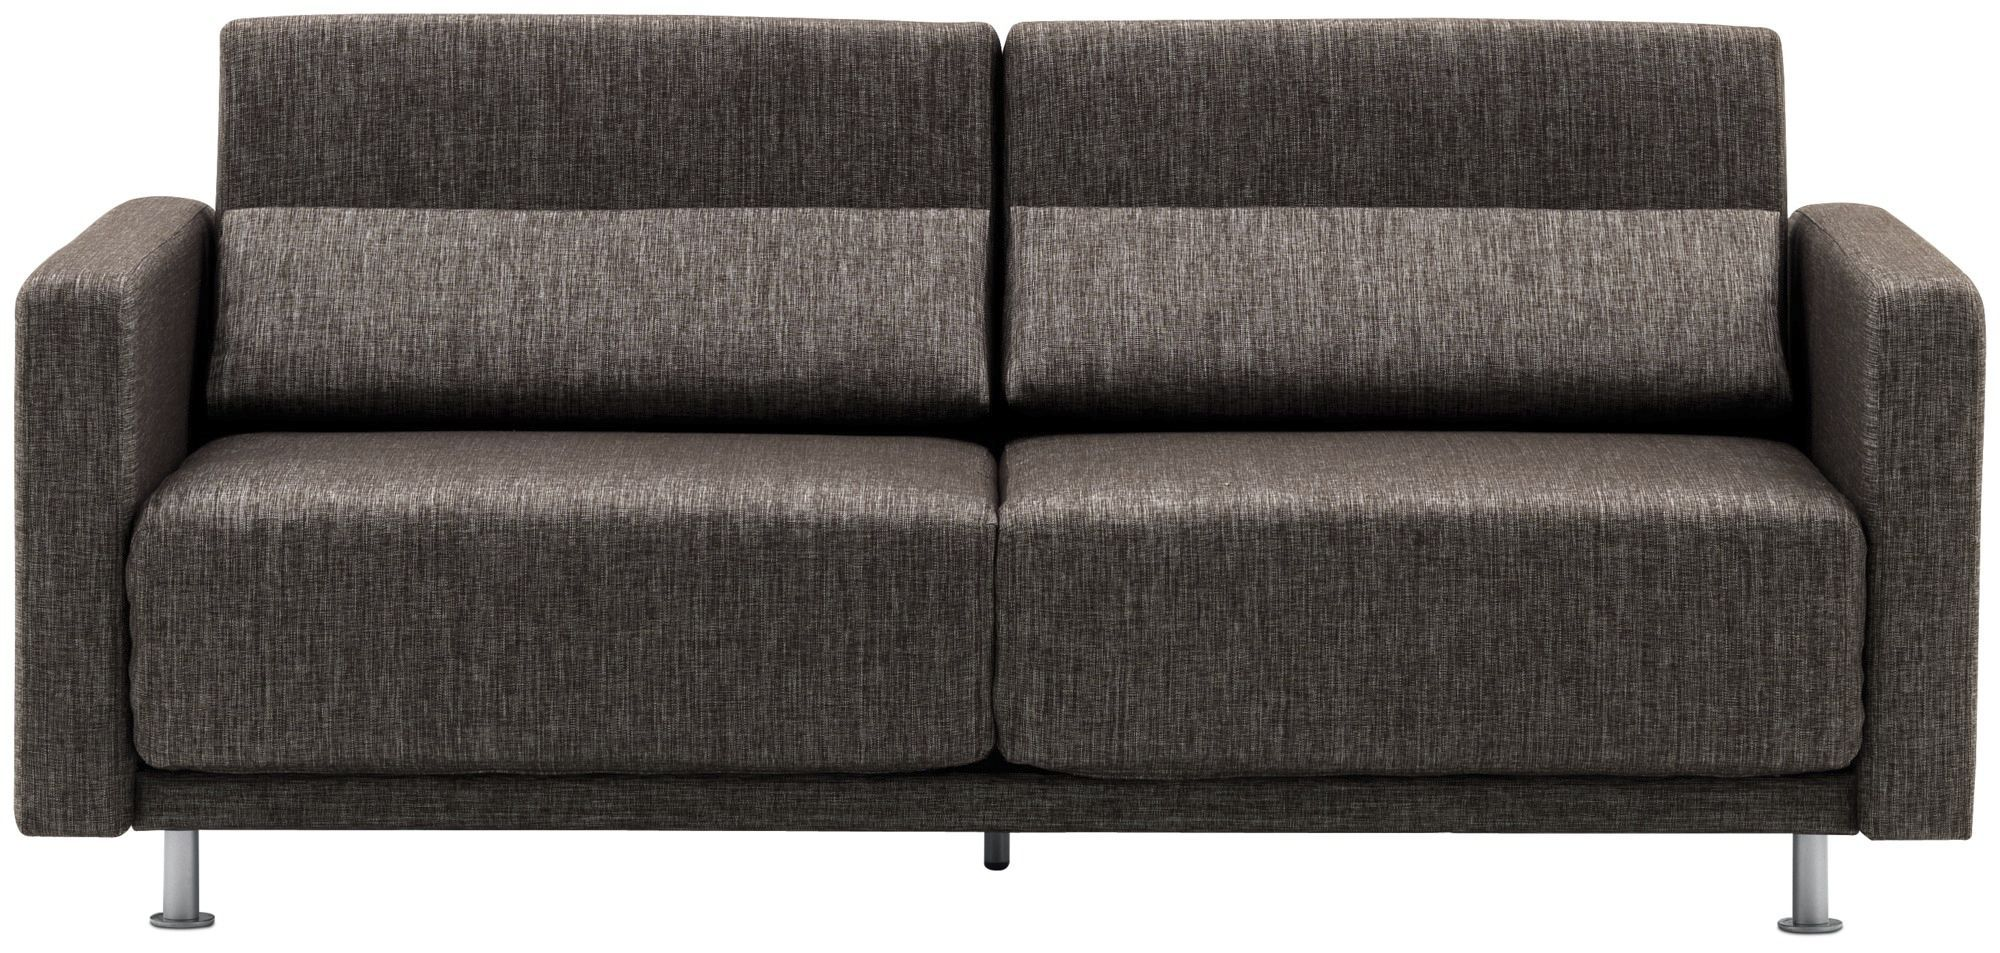 sofa bed contemporary fabric 25 seater melo - Boconcept Canape Convertible